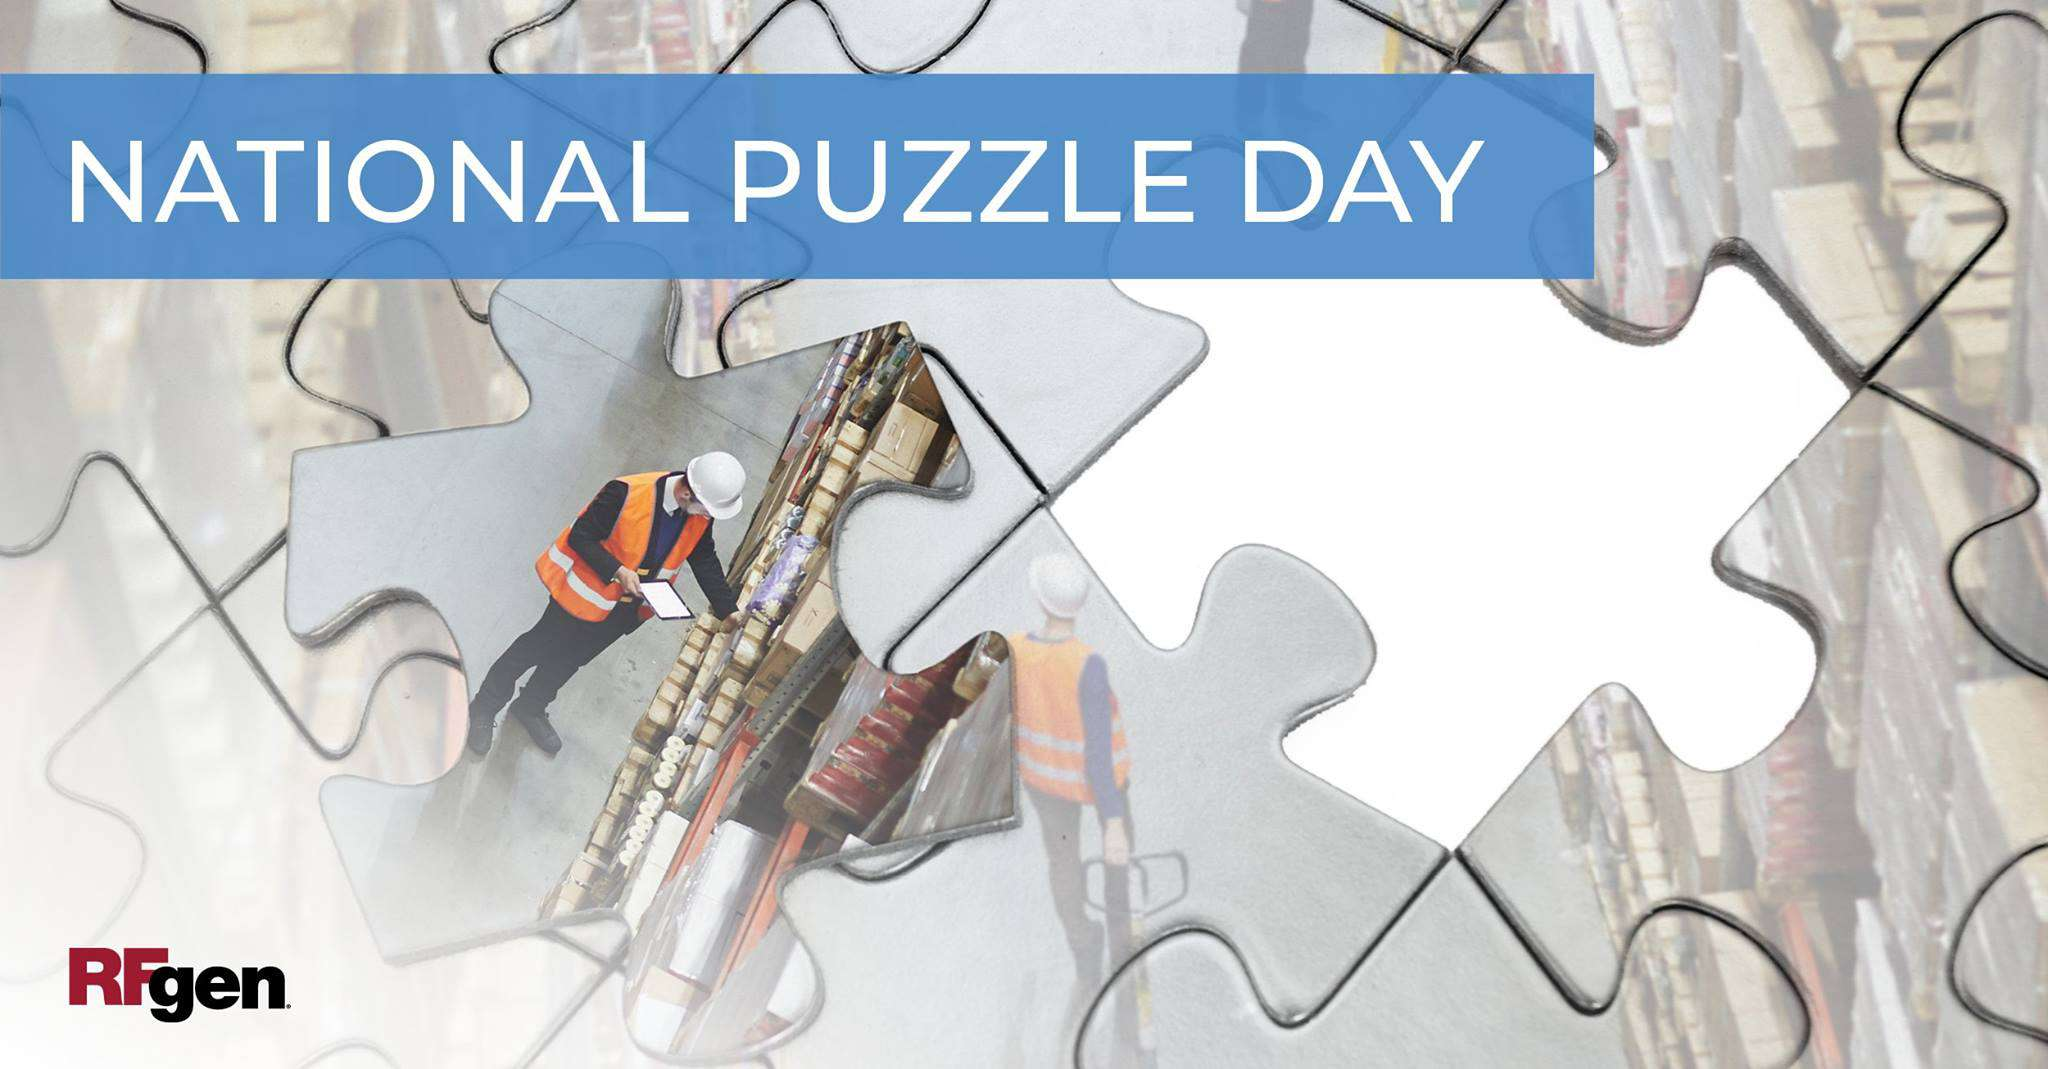 National Puzzle Day Wishes For Facebook